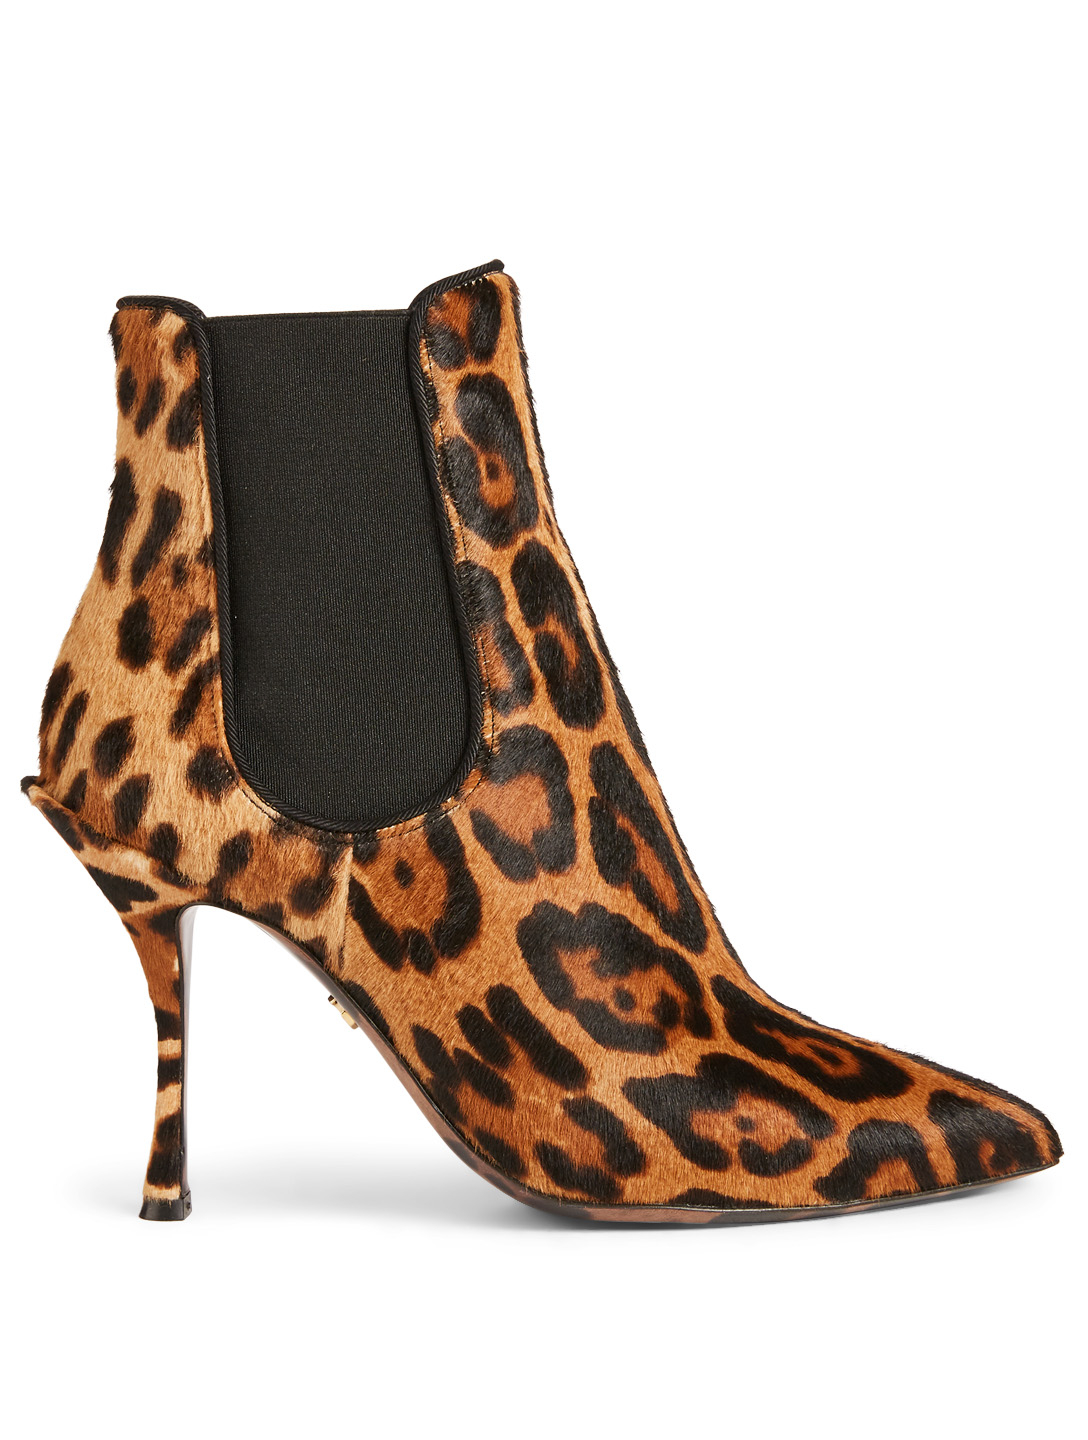 DOLCE & GABBANA Lori Calf Hair Ankle Boots In Leopard Print Womens Brown